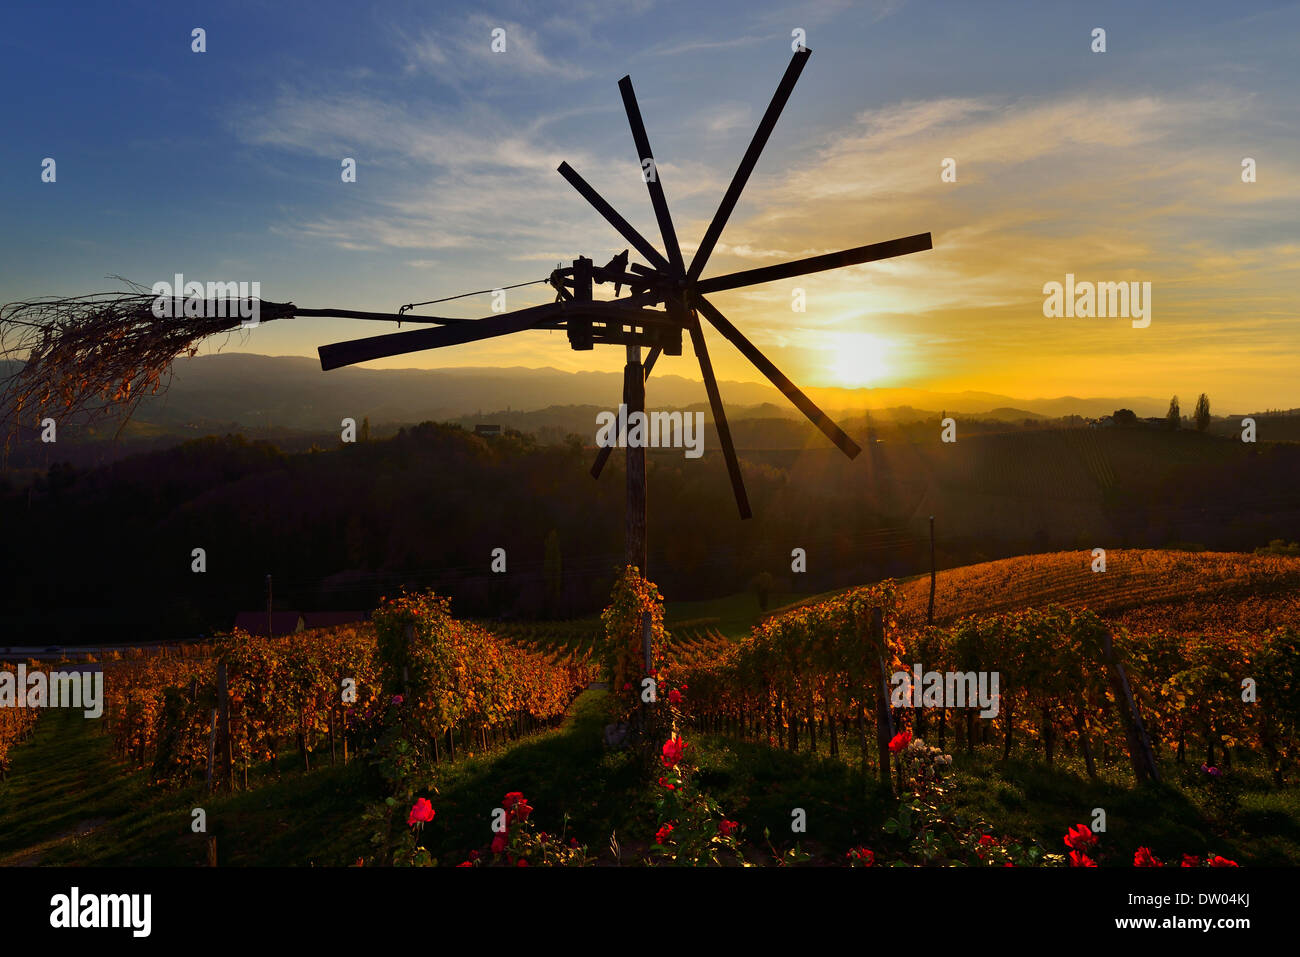 The Klapotetz, the South Styrian variant of a scarecrow, South Styrian Wine Road, Styria, Austria - Stock Image